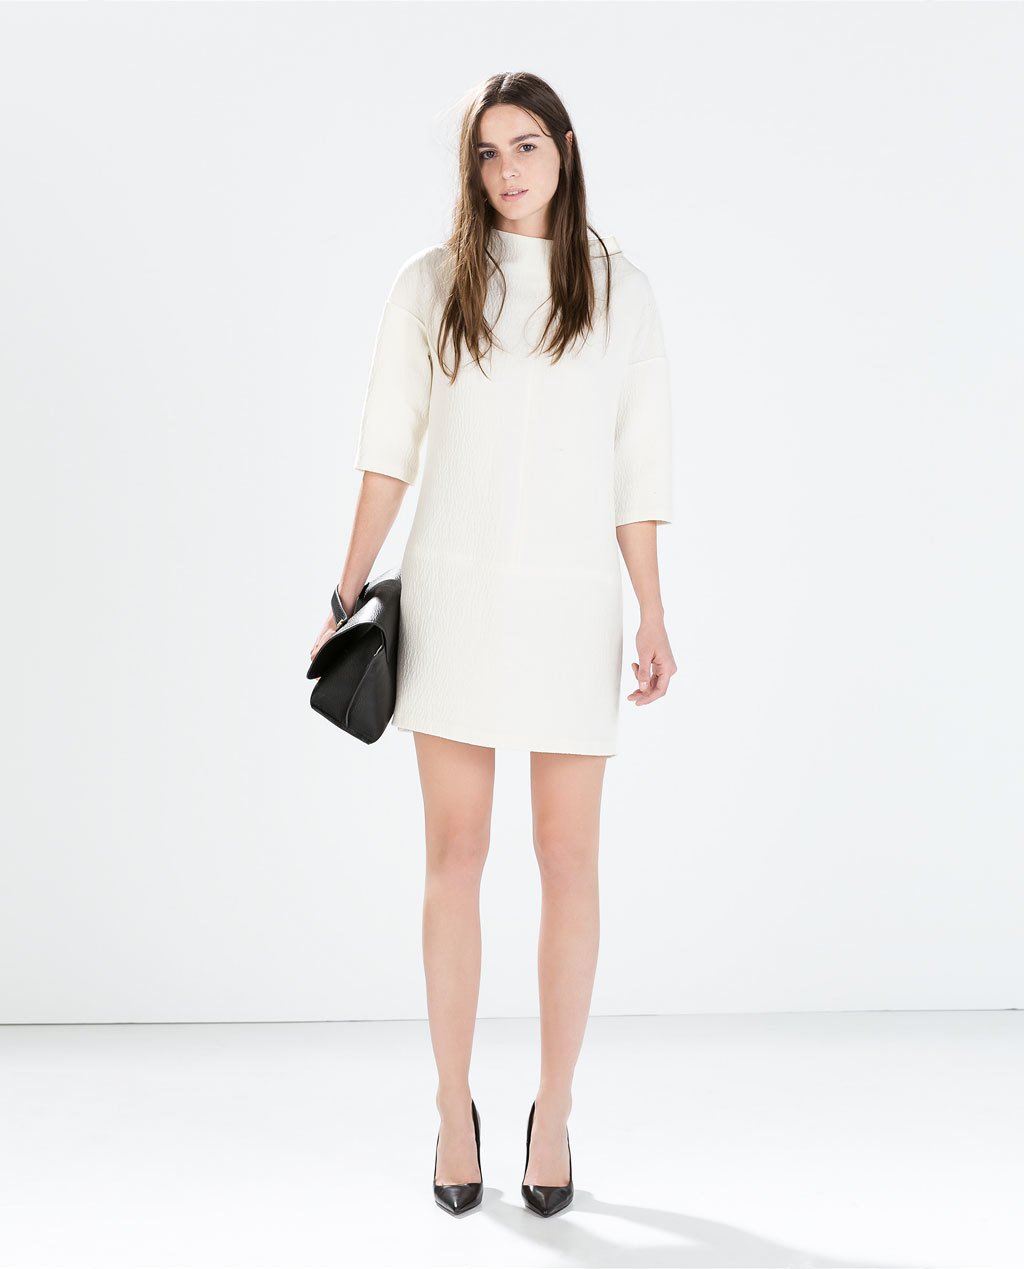 Textured Dress - style: shift; length: mid thigh; pattern: plain; neckline: high neck; predominant colour: ivory/cream; occasions: evening, creative work; fit: straight cut; sleeve length: 3/4 length; sleeve style: standard; pattern type: fabric; texture group: woven light midweight; season: a/w 2014